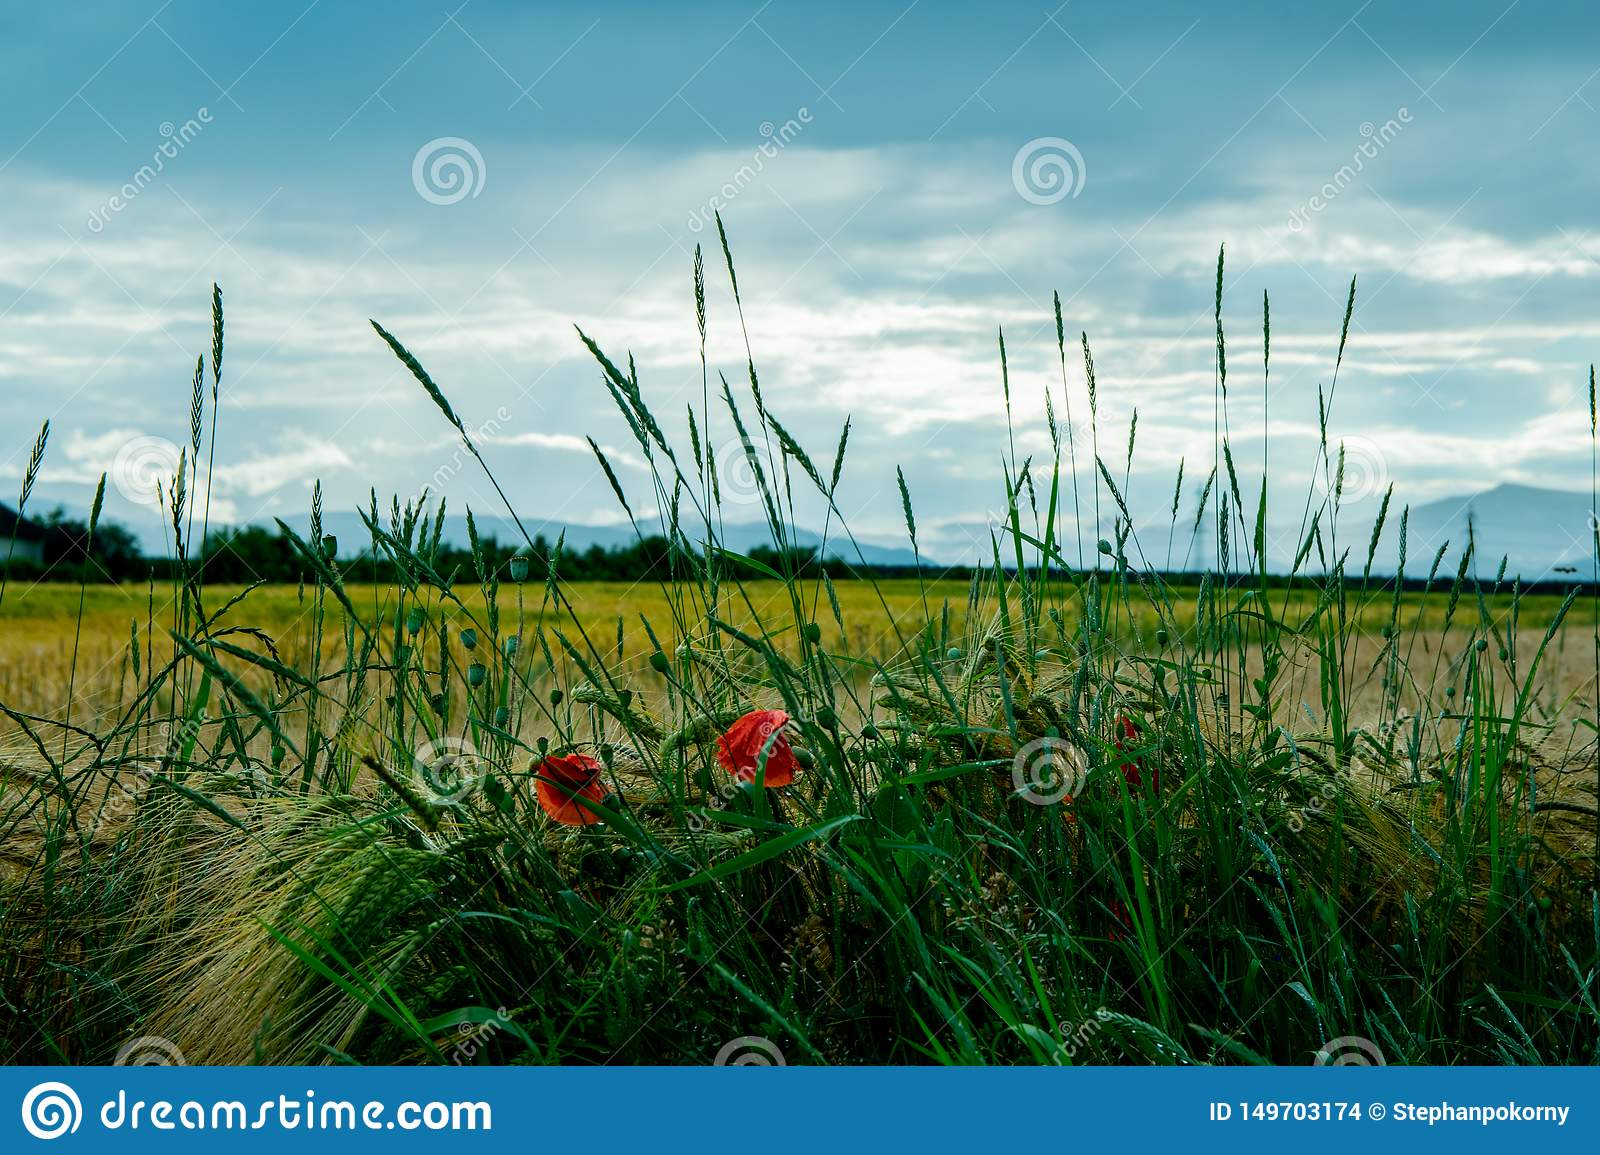 Poppy flower in front of a field and a cloudy sky